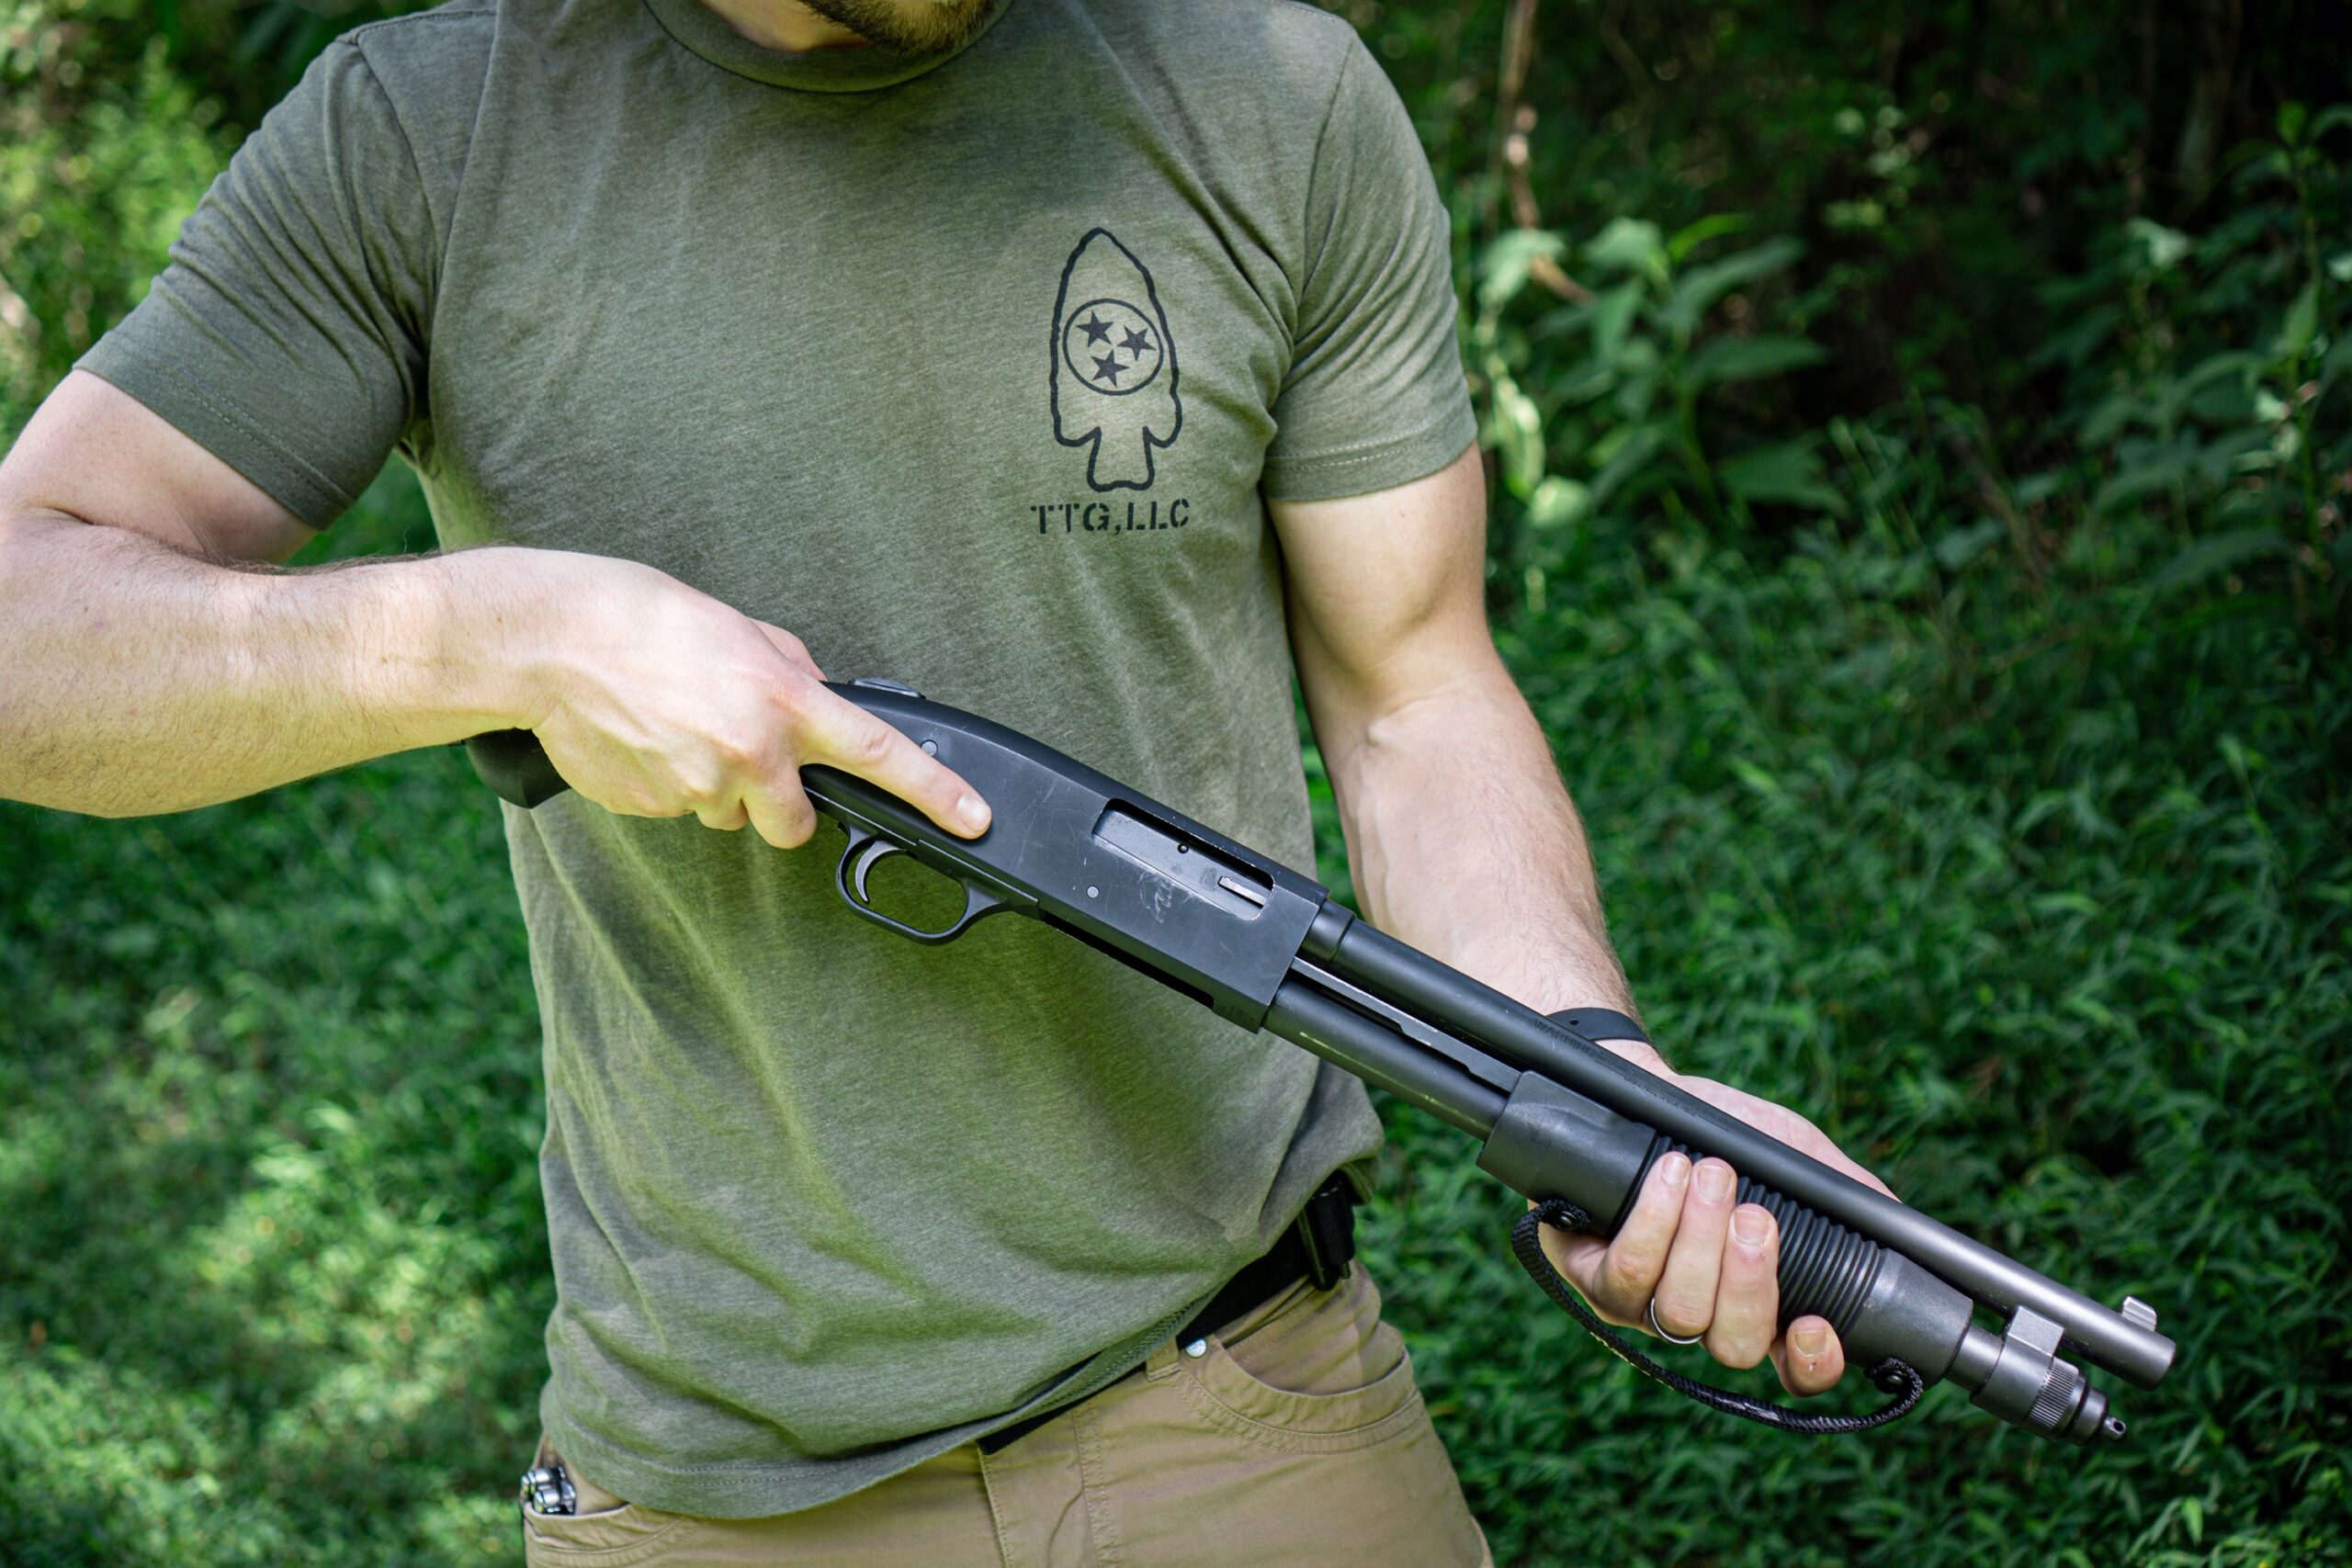 The author holding the Mossberg Shockwave